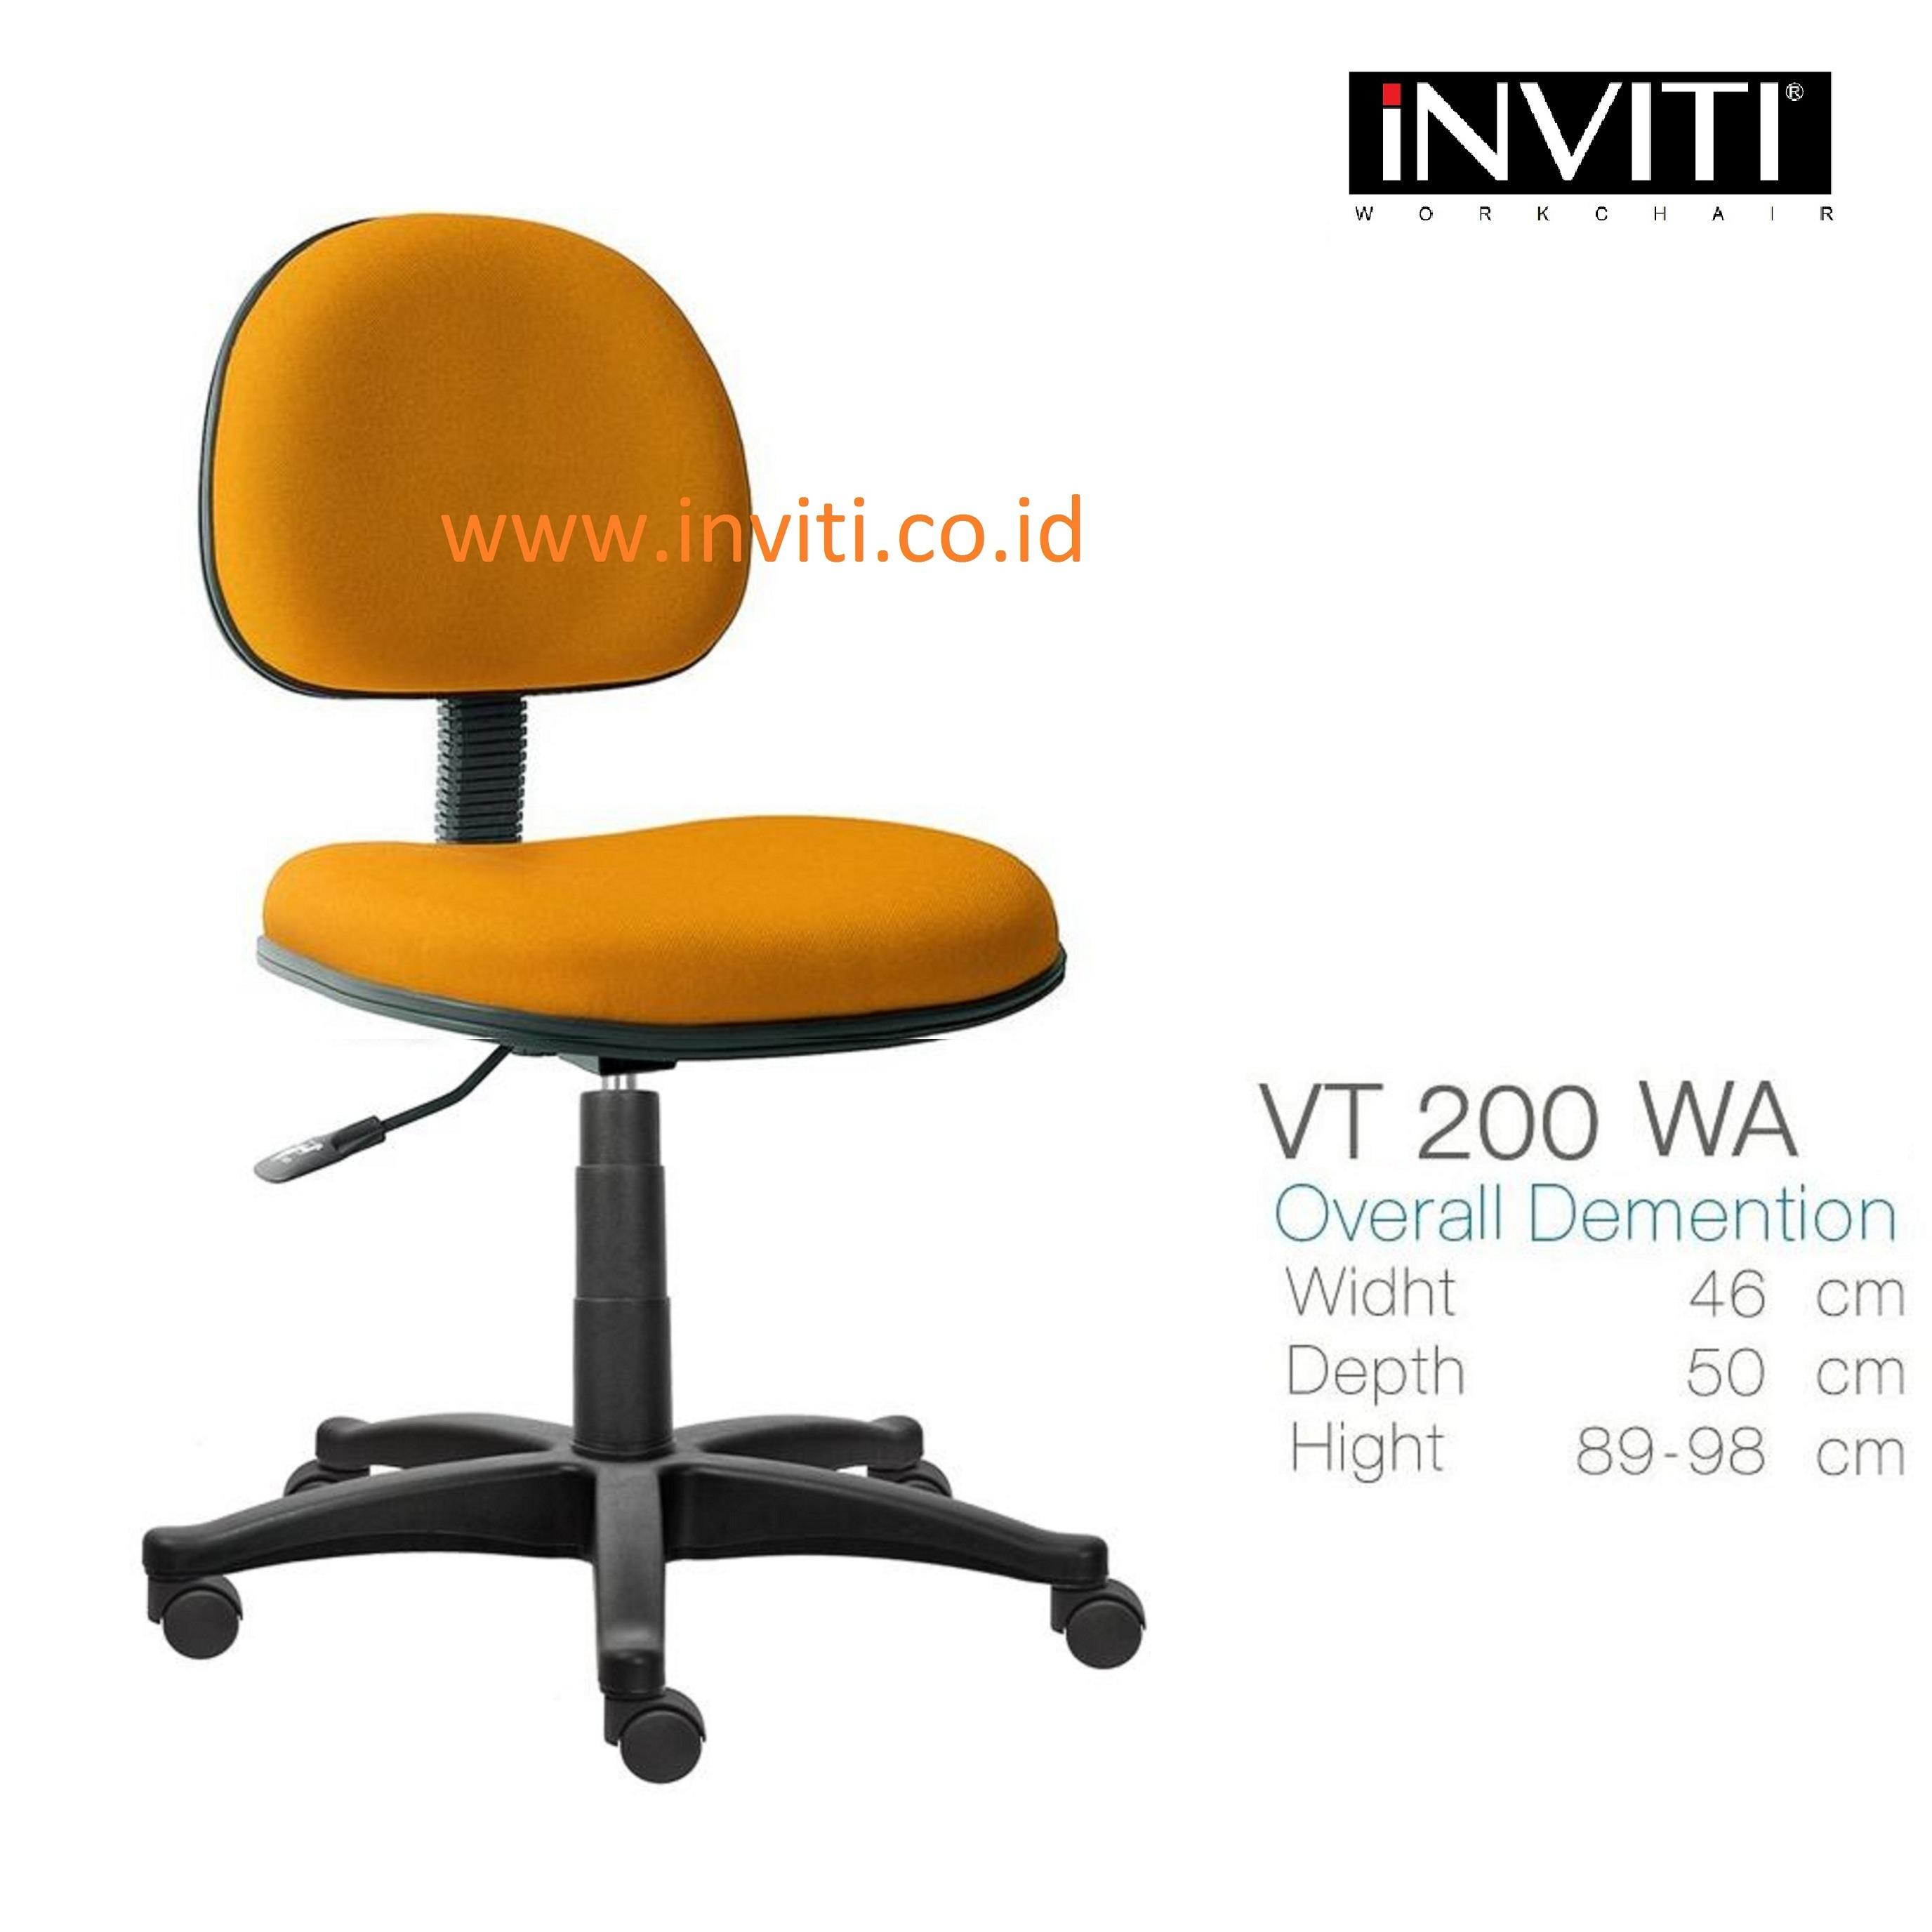 ergonomic chair jakarta unusual company sell secretary office inviti vt 200 wa from